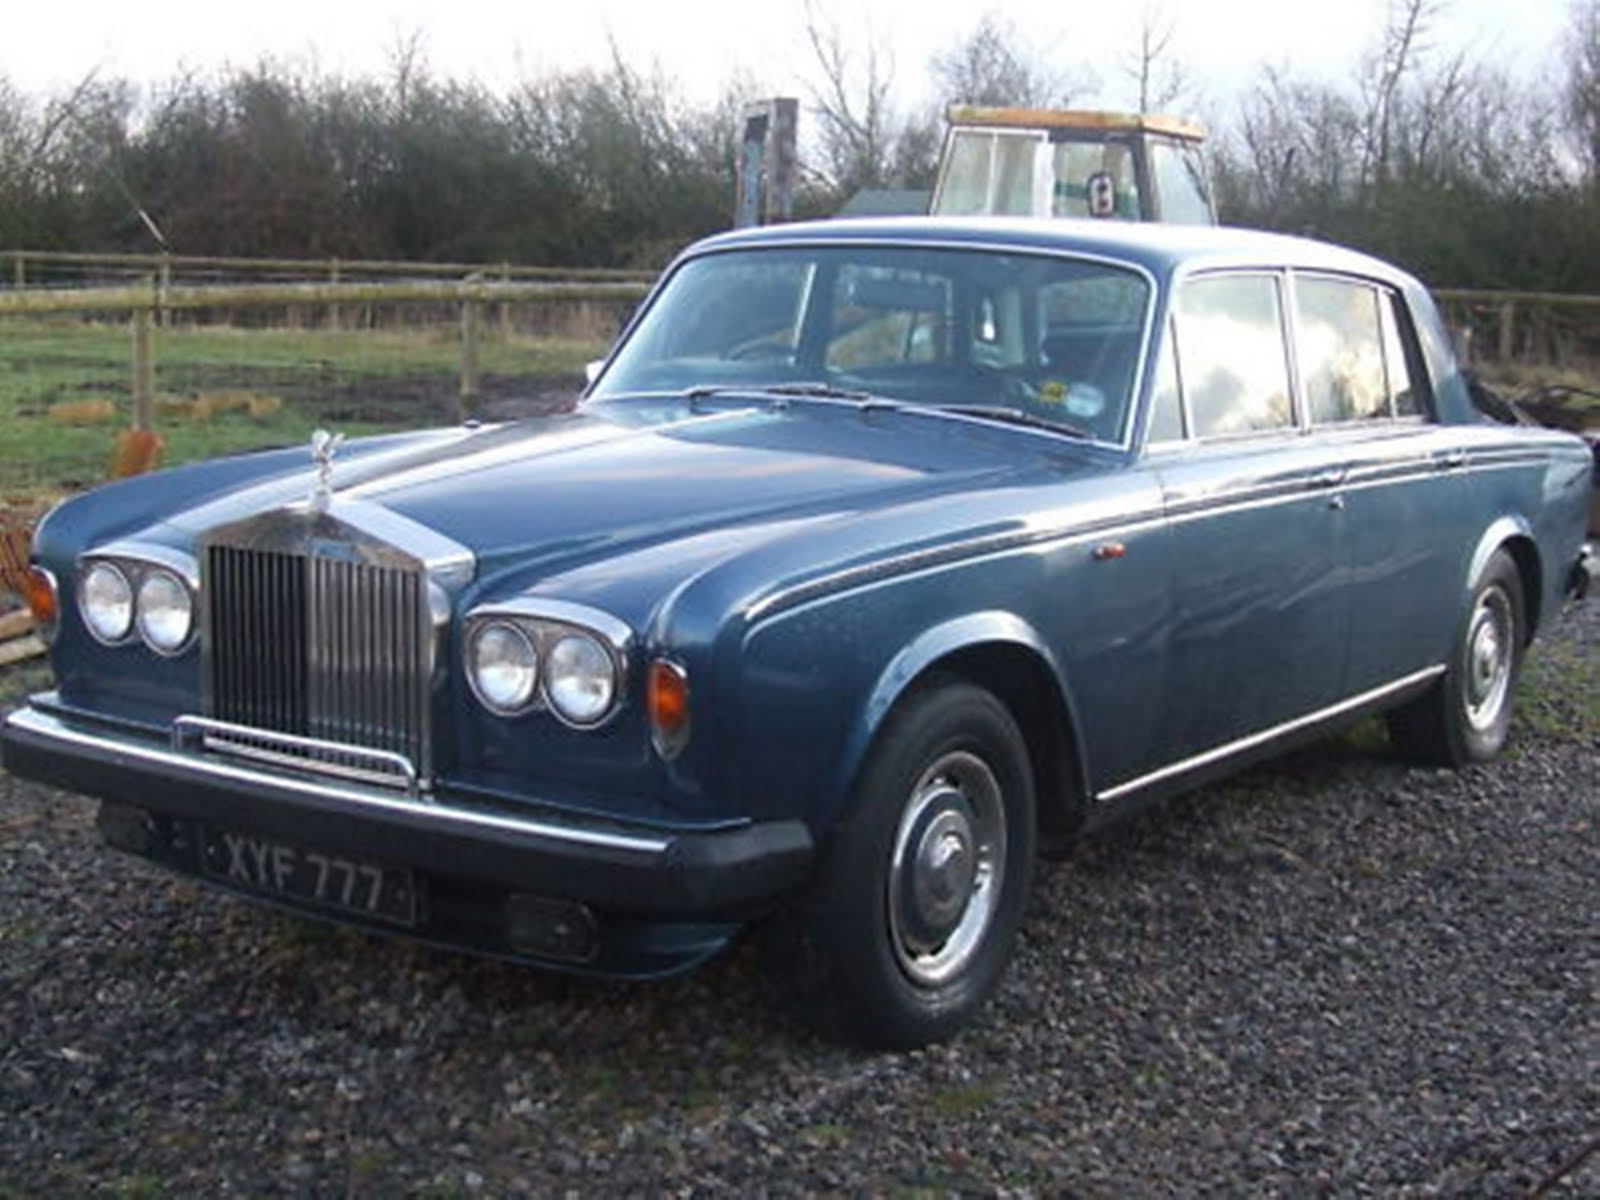 rolls royce silver shadow ii 1978 01 08 1978 rolls royce. Black Bedroom Furniture Sets. Home Design Ideas